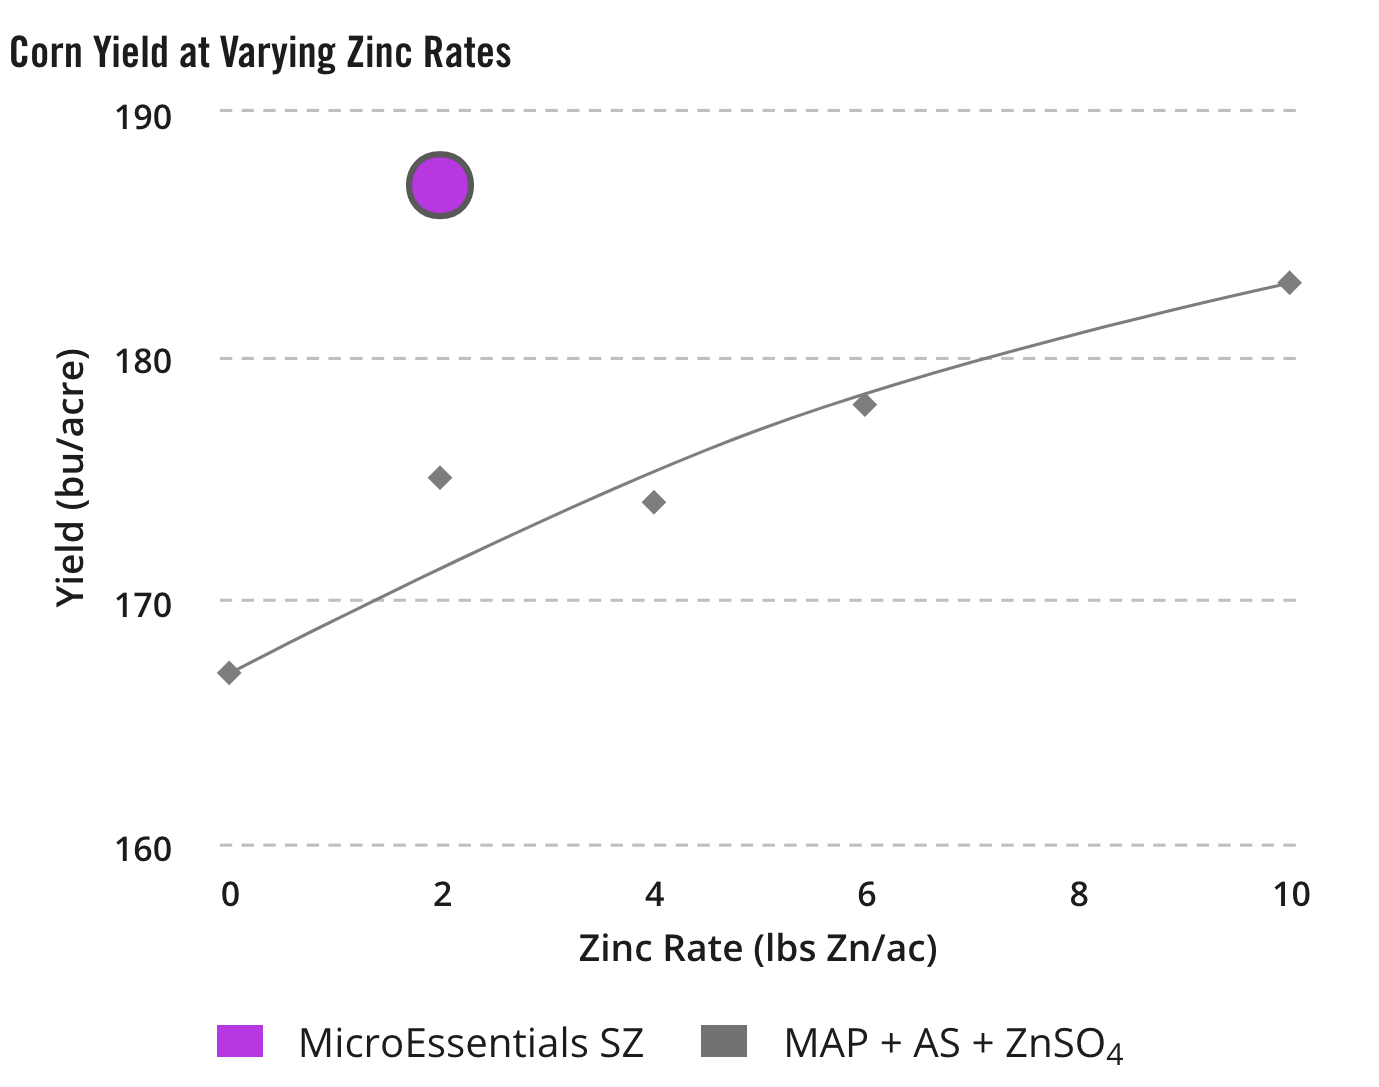 Corn Yield at Varying Zinc Rates